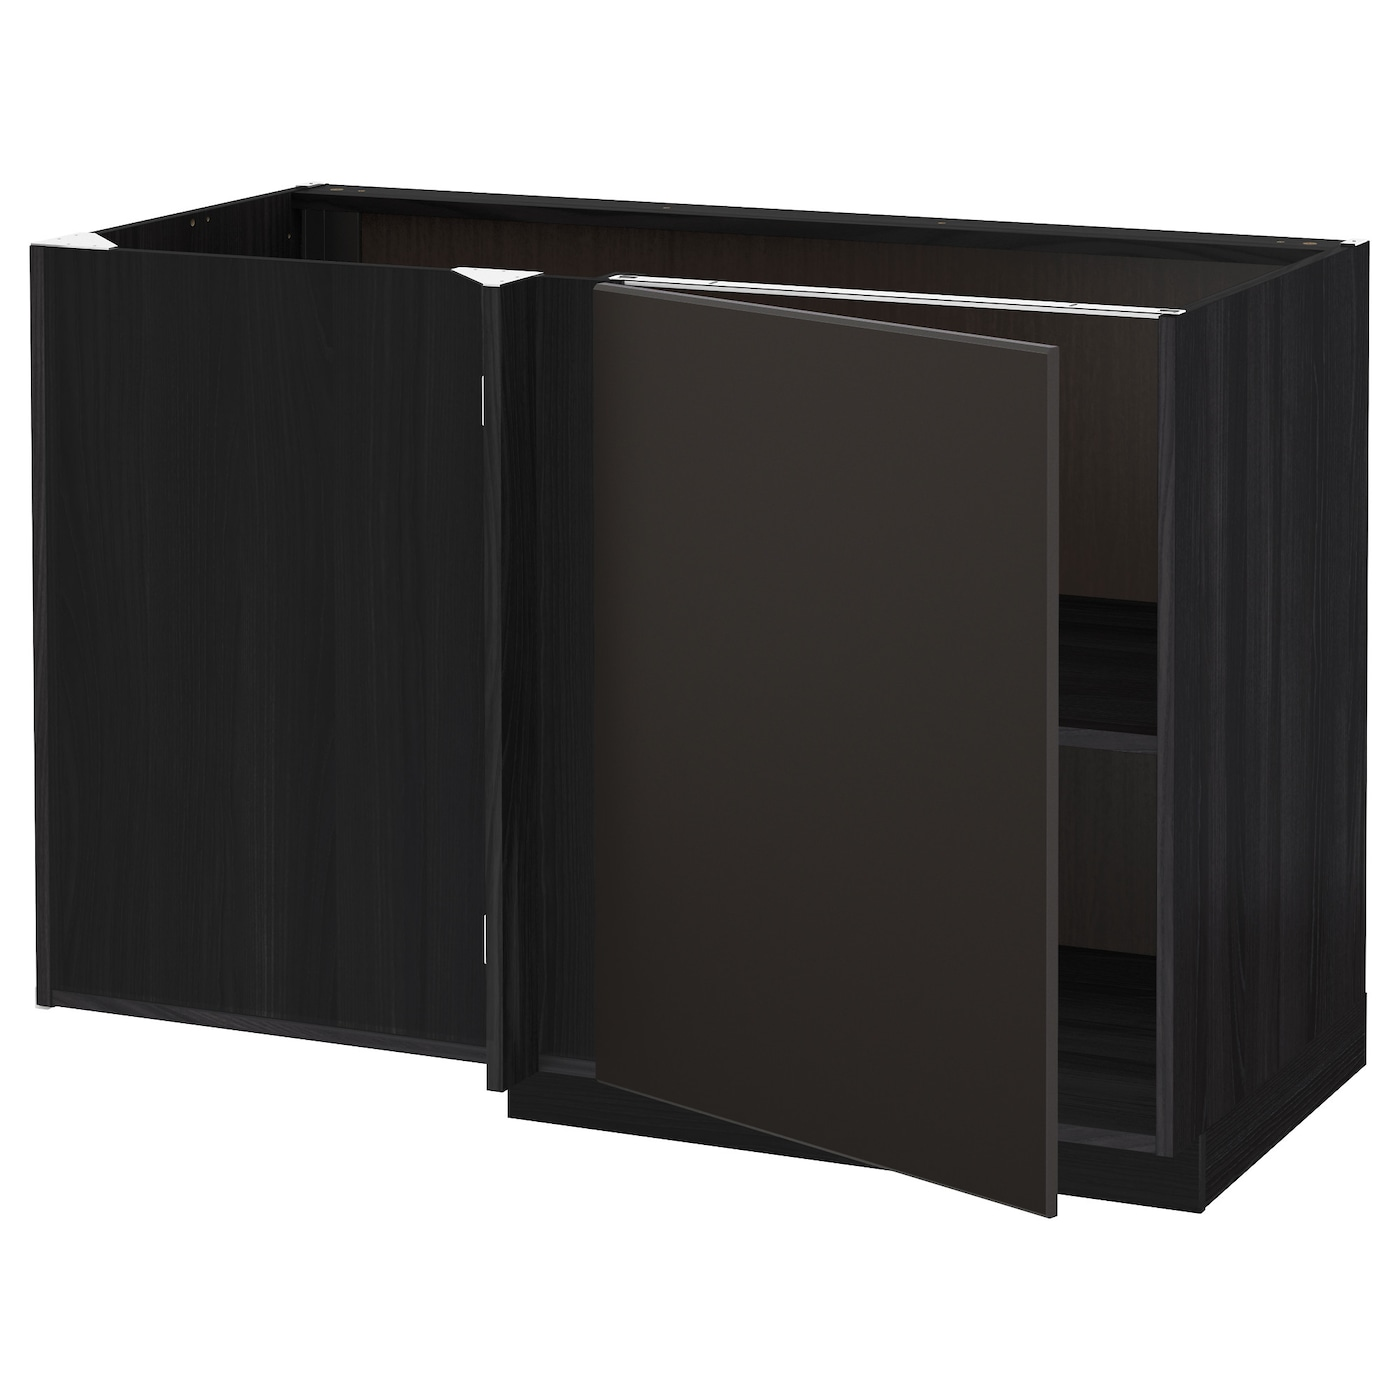 corner cabinet ikea metod corner base cabinet with shelf black kungsbacka 13913